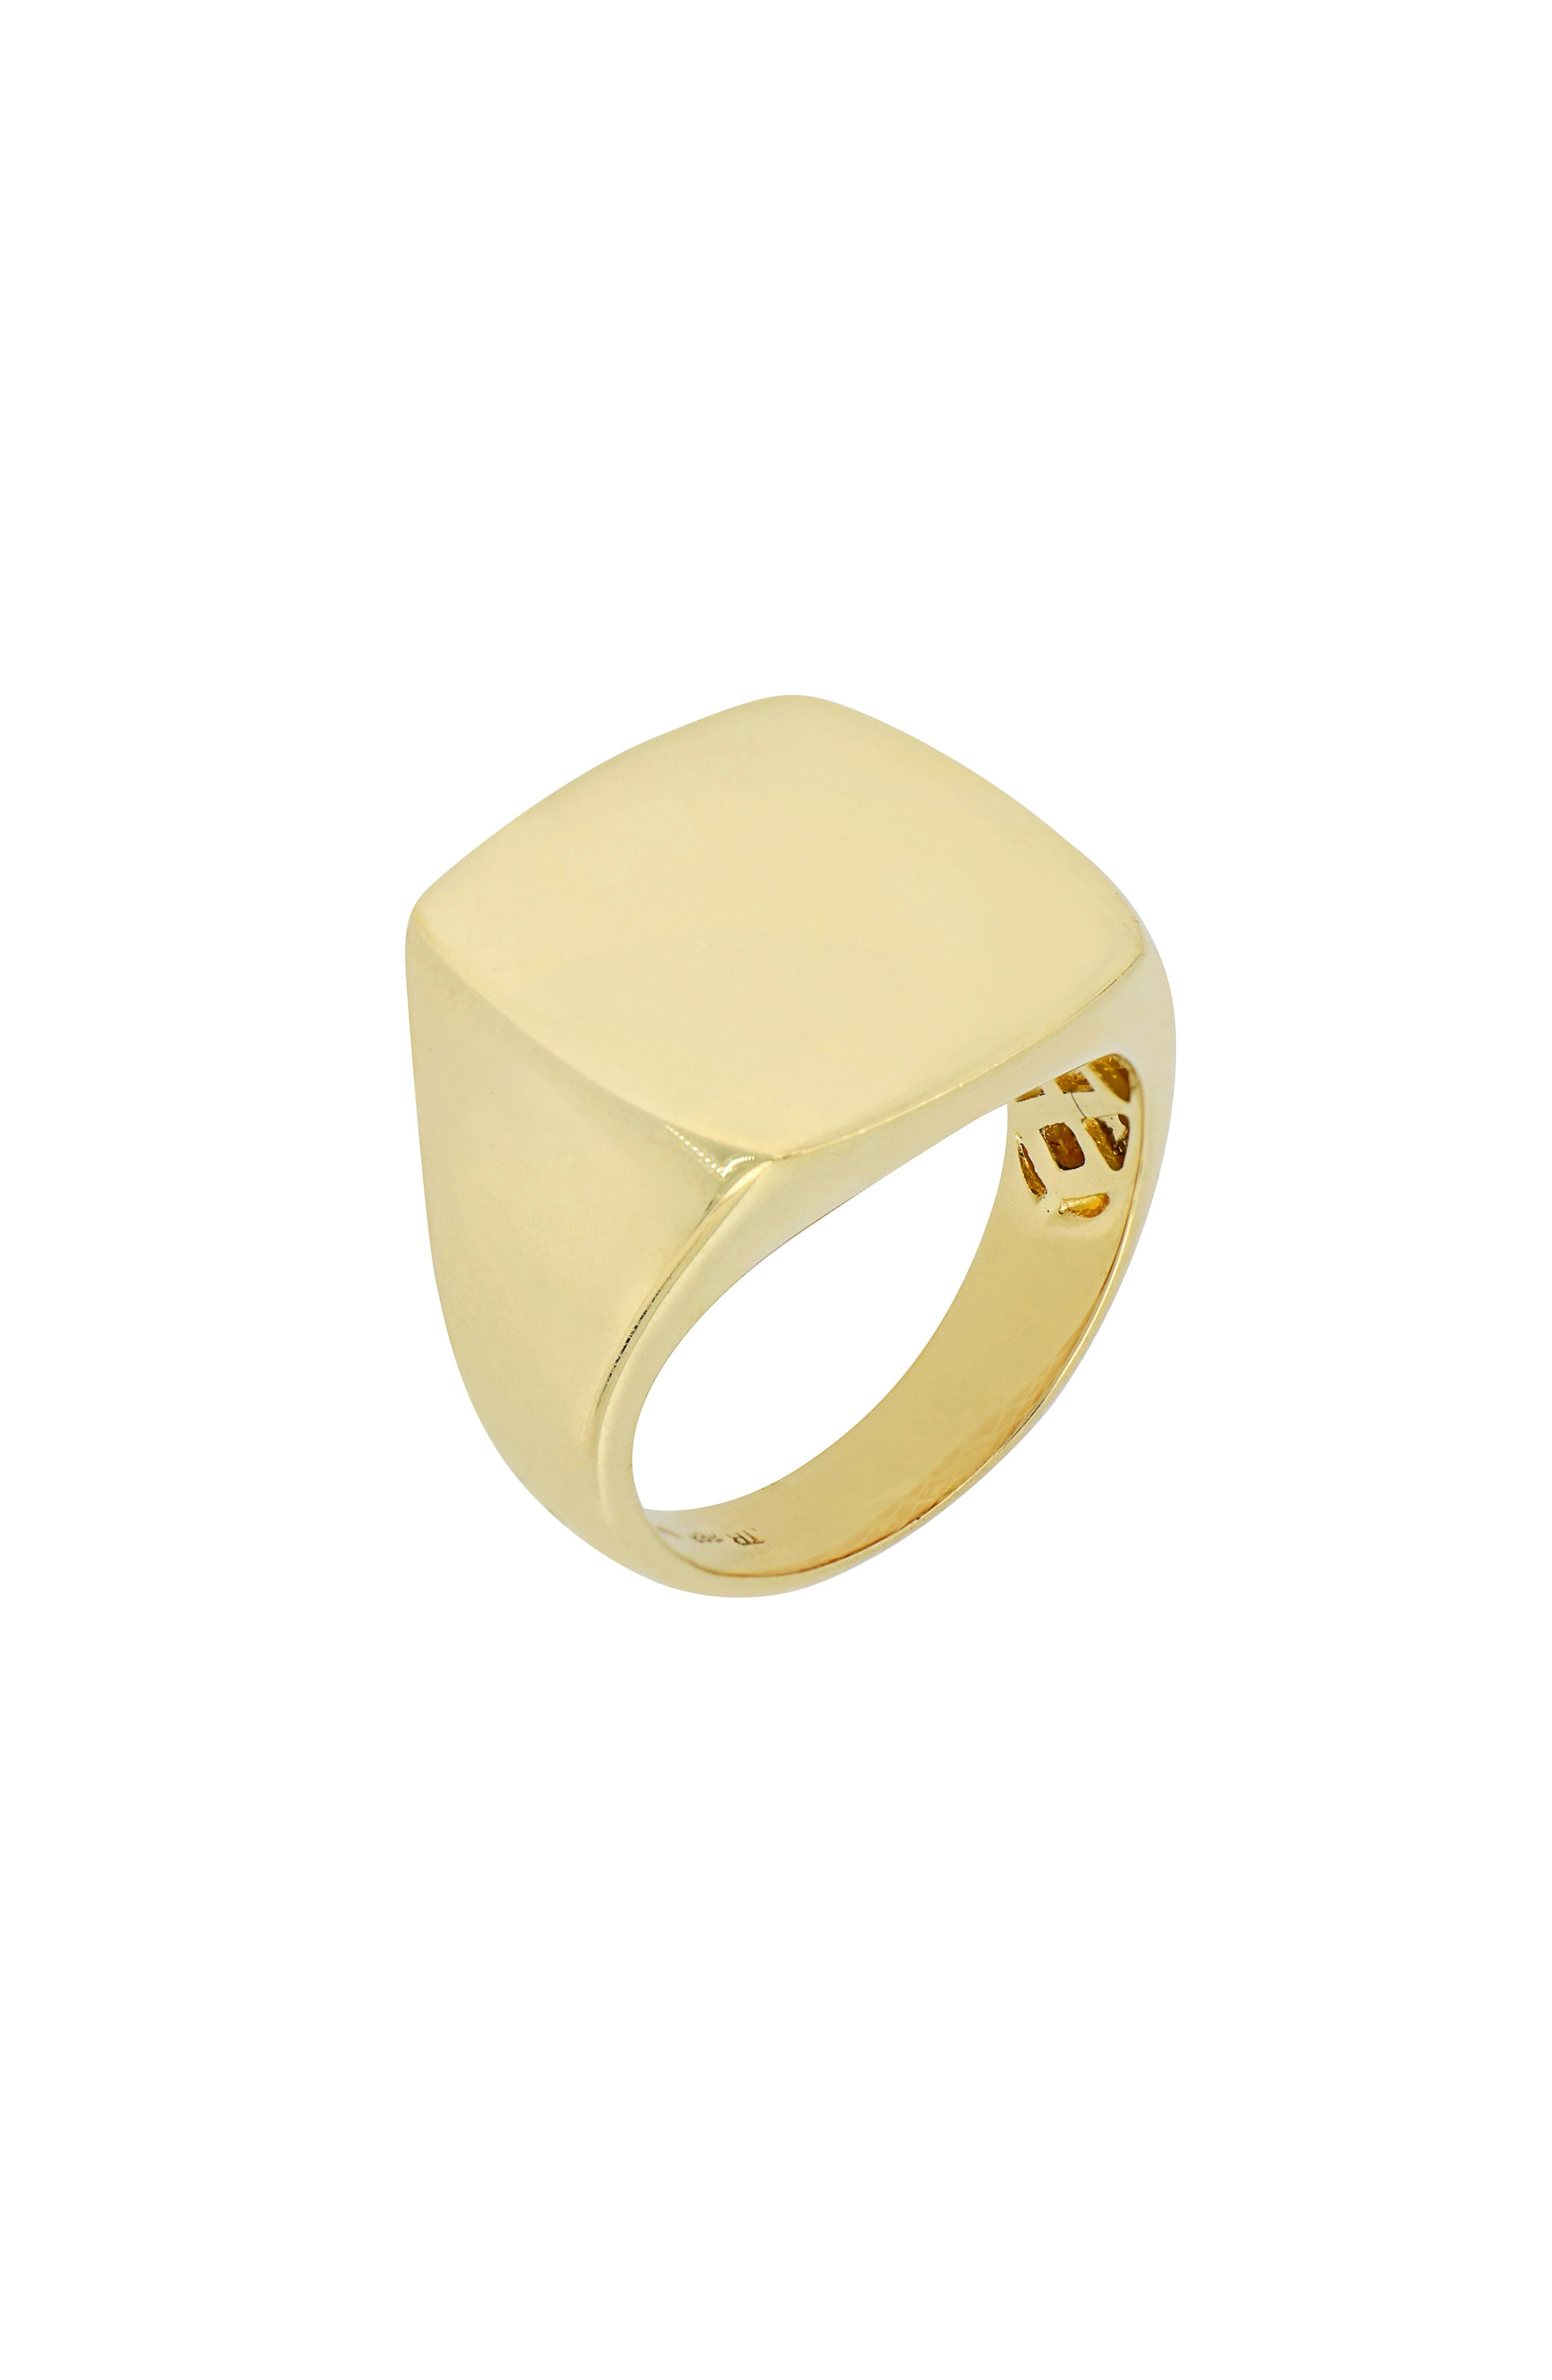 Square Signet Ring,                         Main,                         color, 710